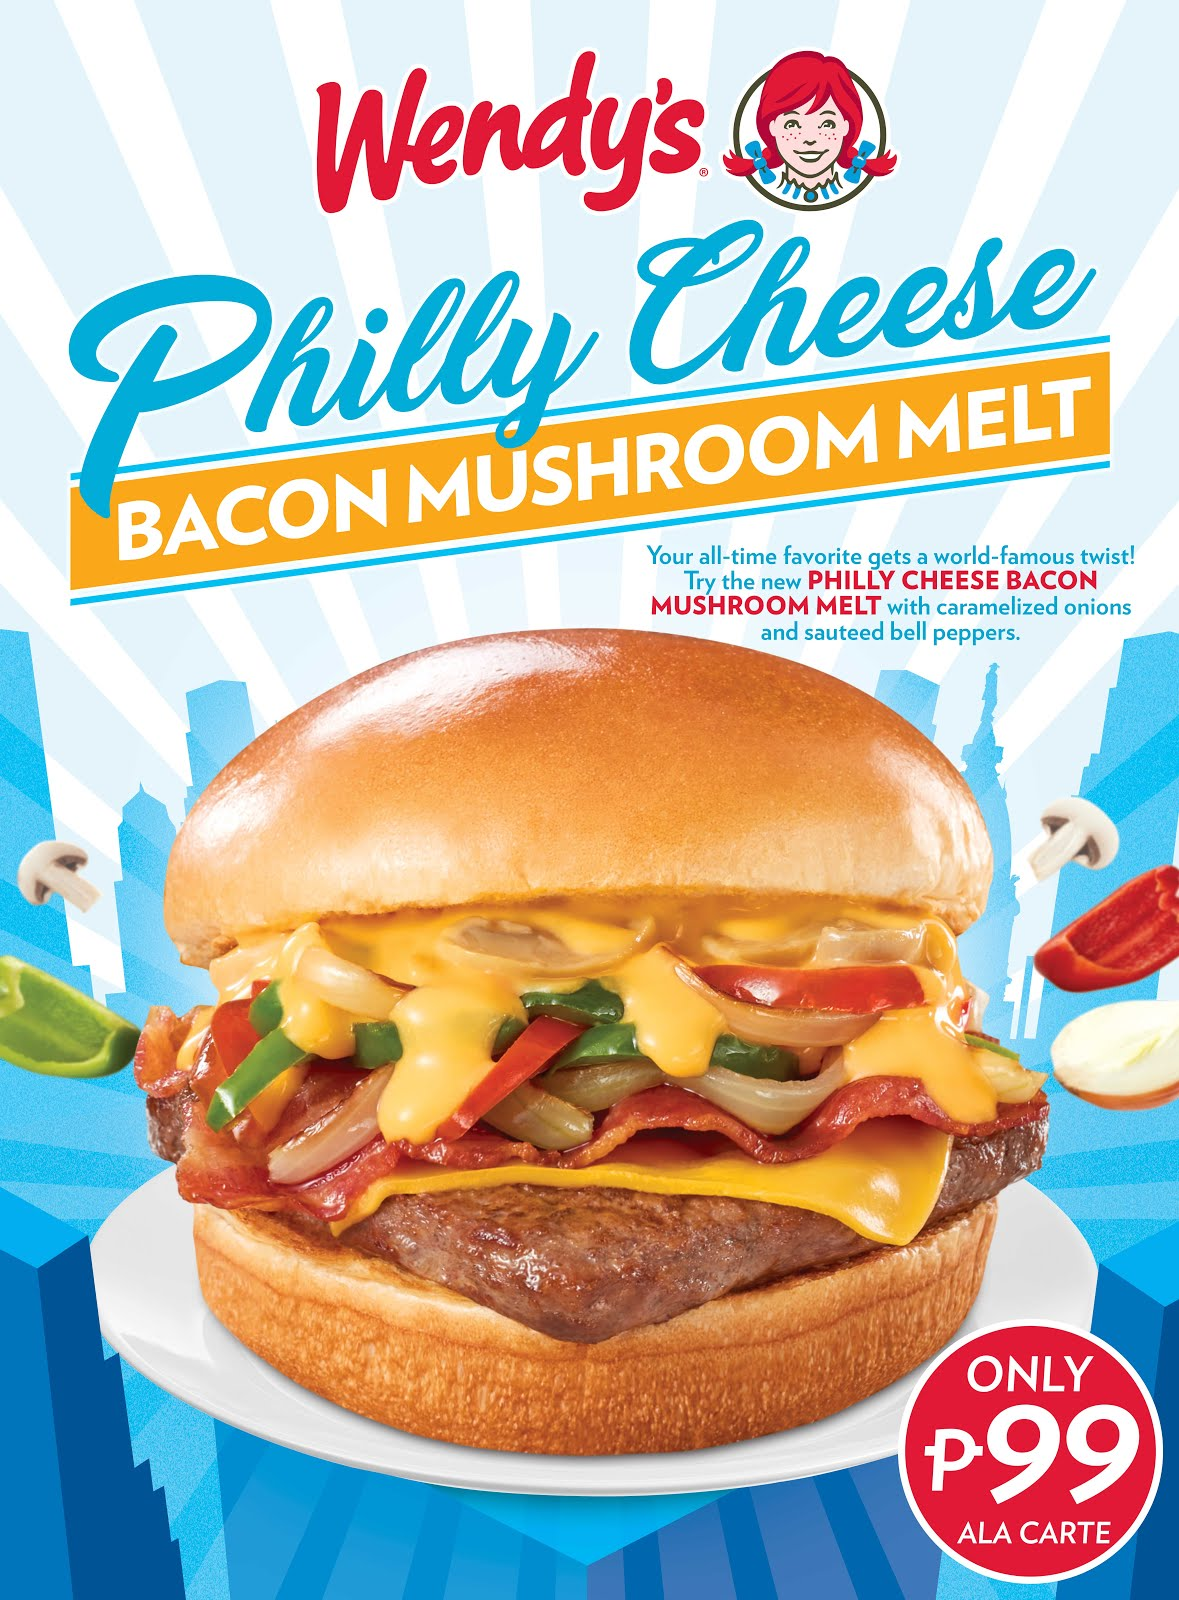 Wendy's Philly Cheese Bacon Mushroom Melt